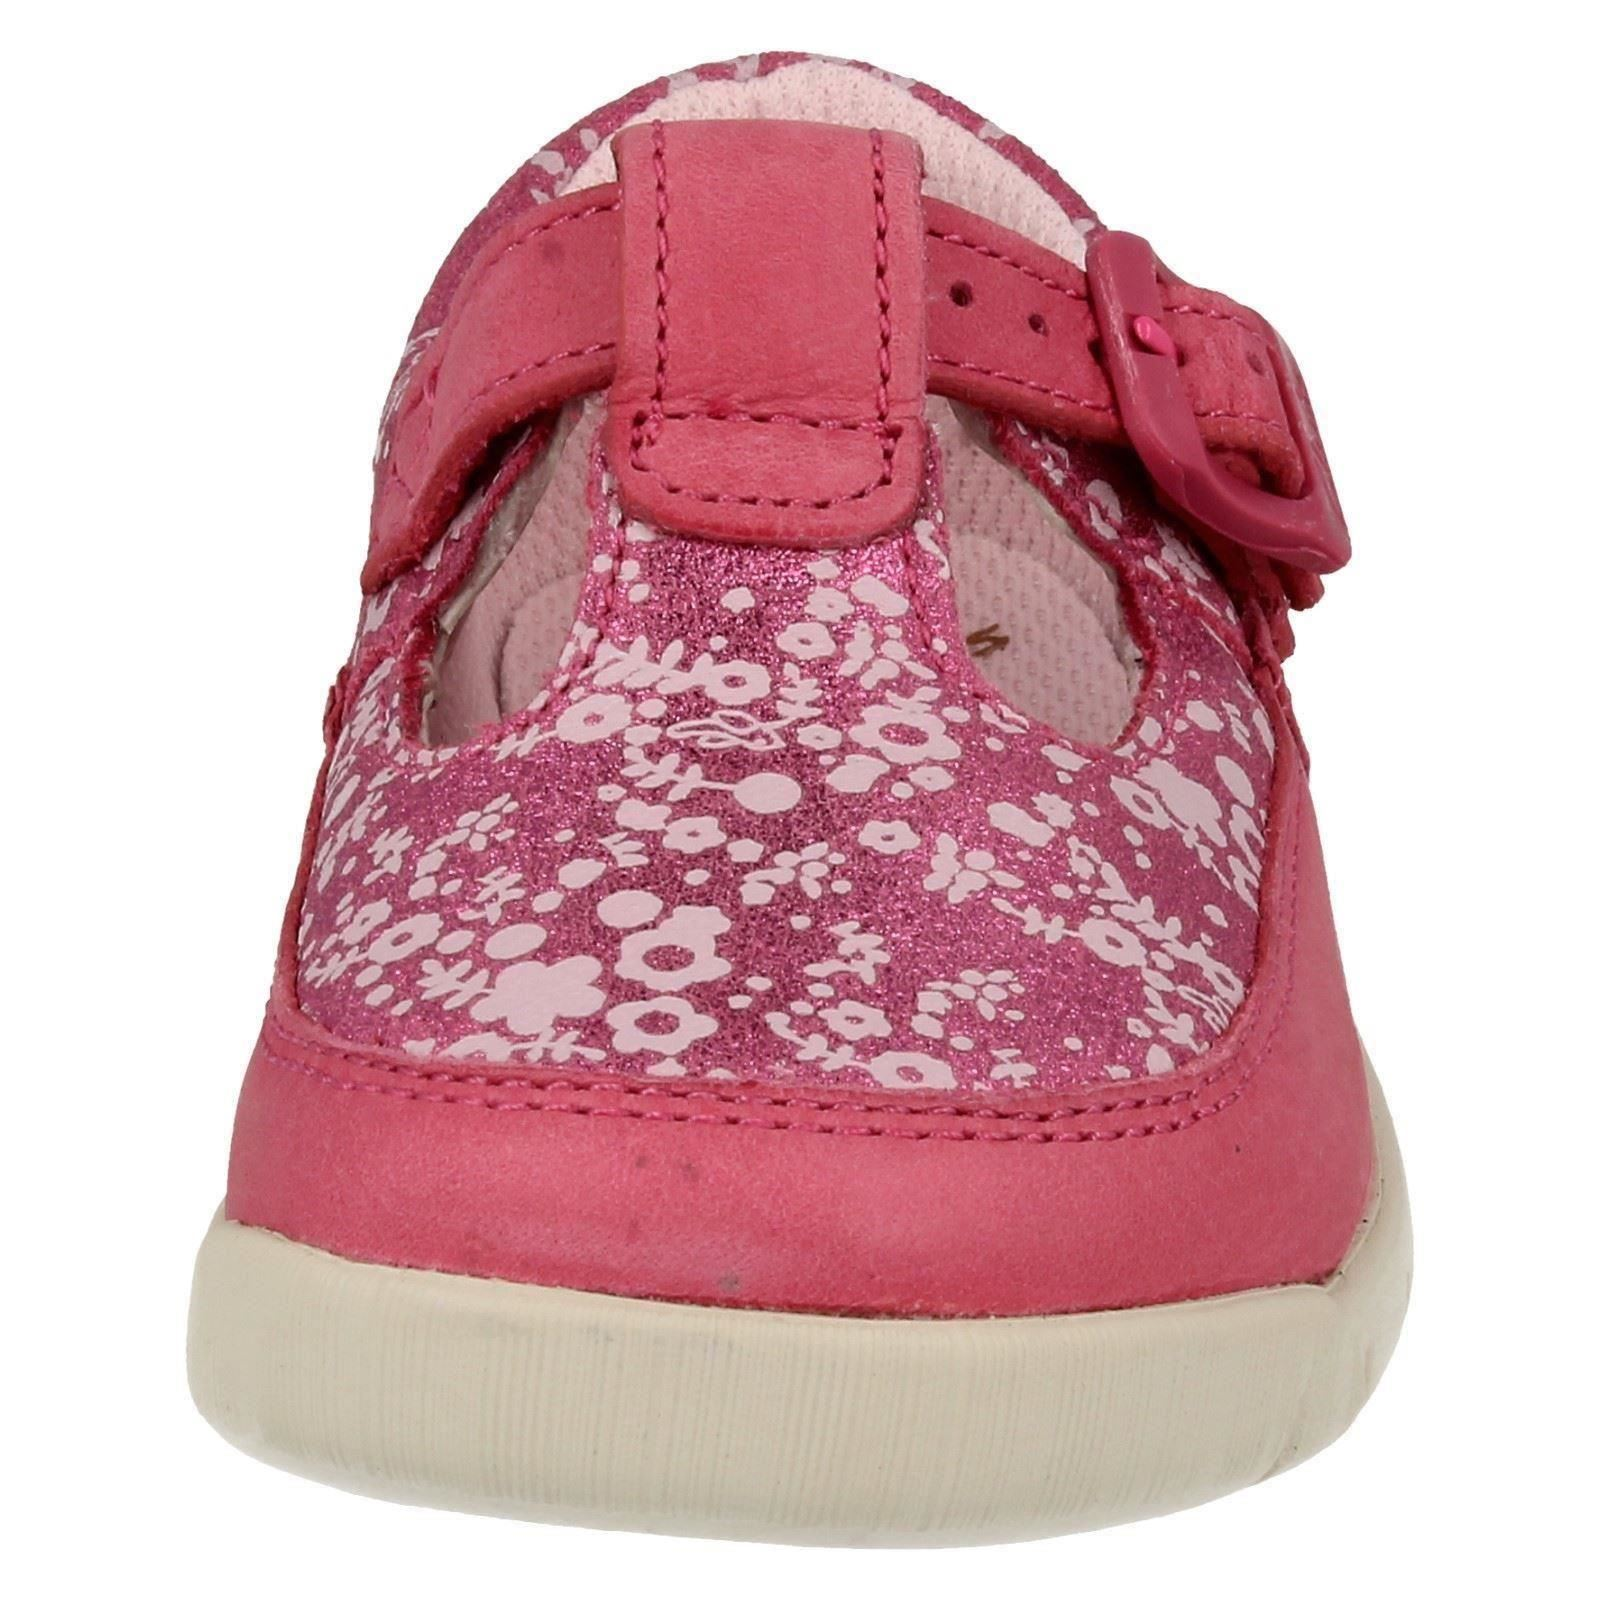 Girls Clarks First Shoes Label Crazy Tale